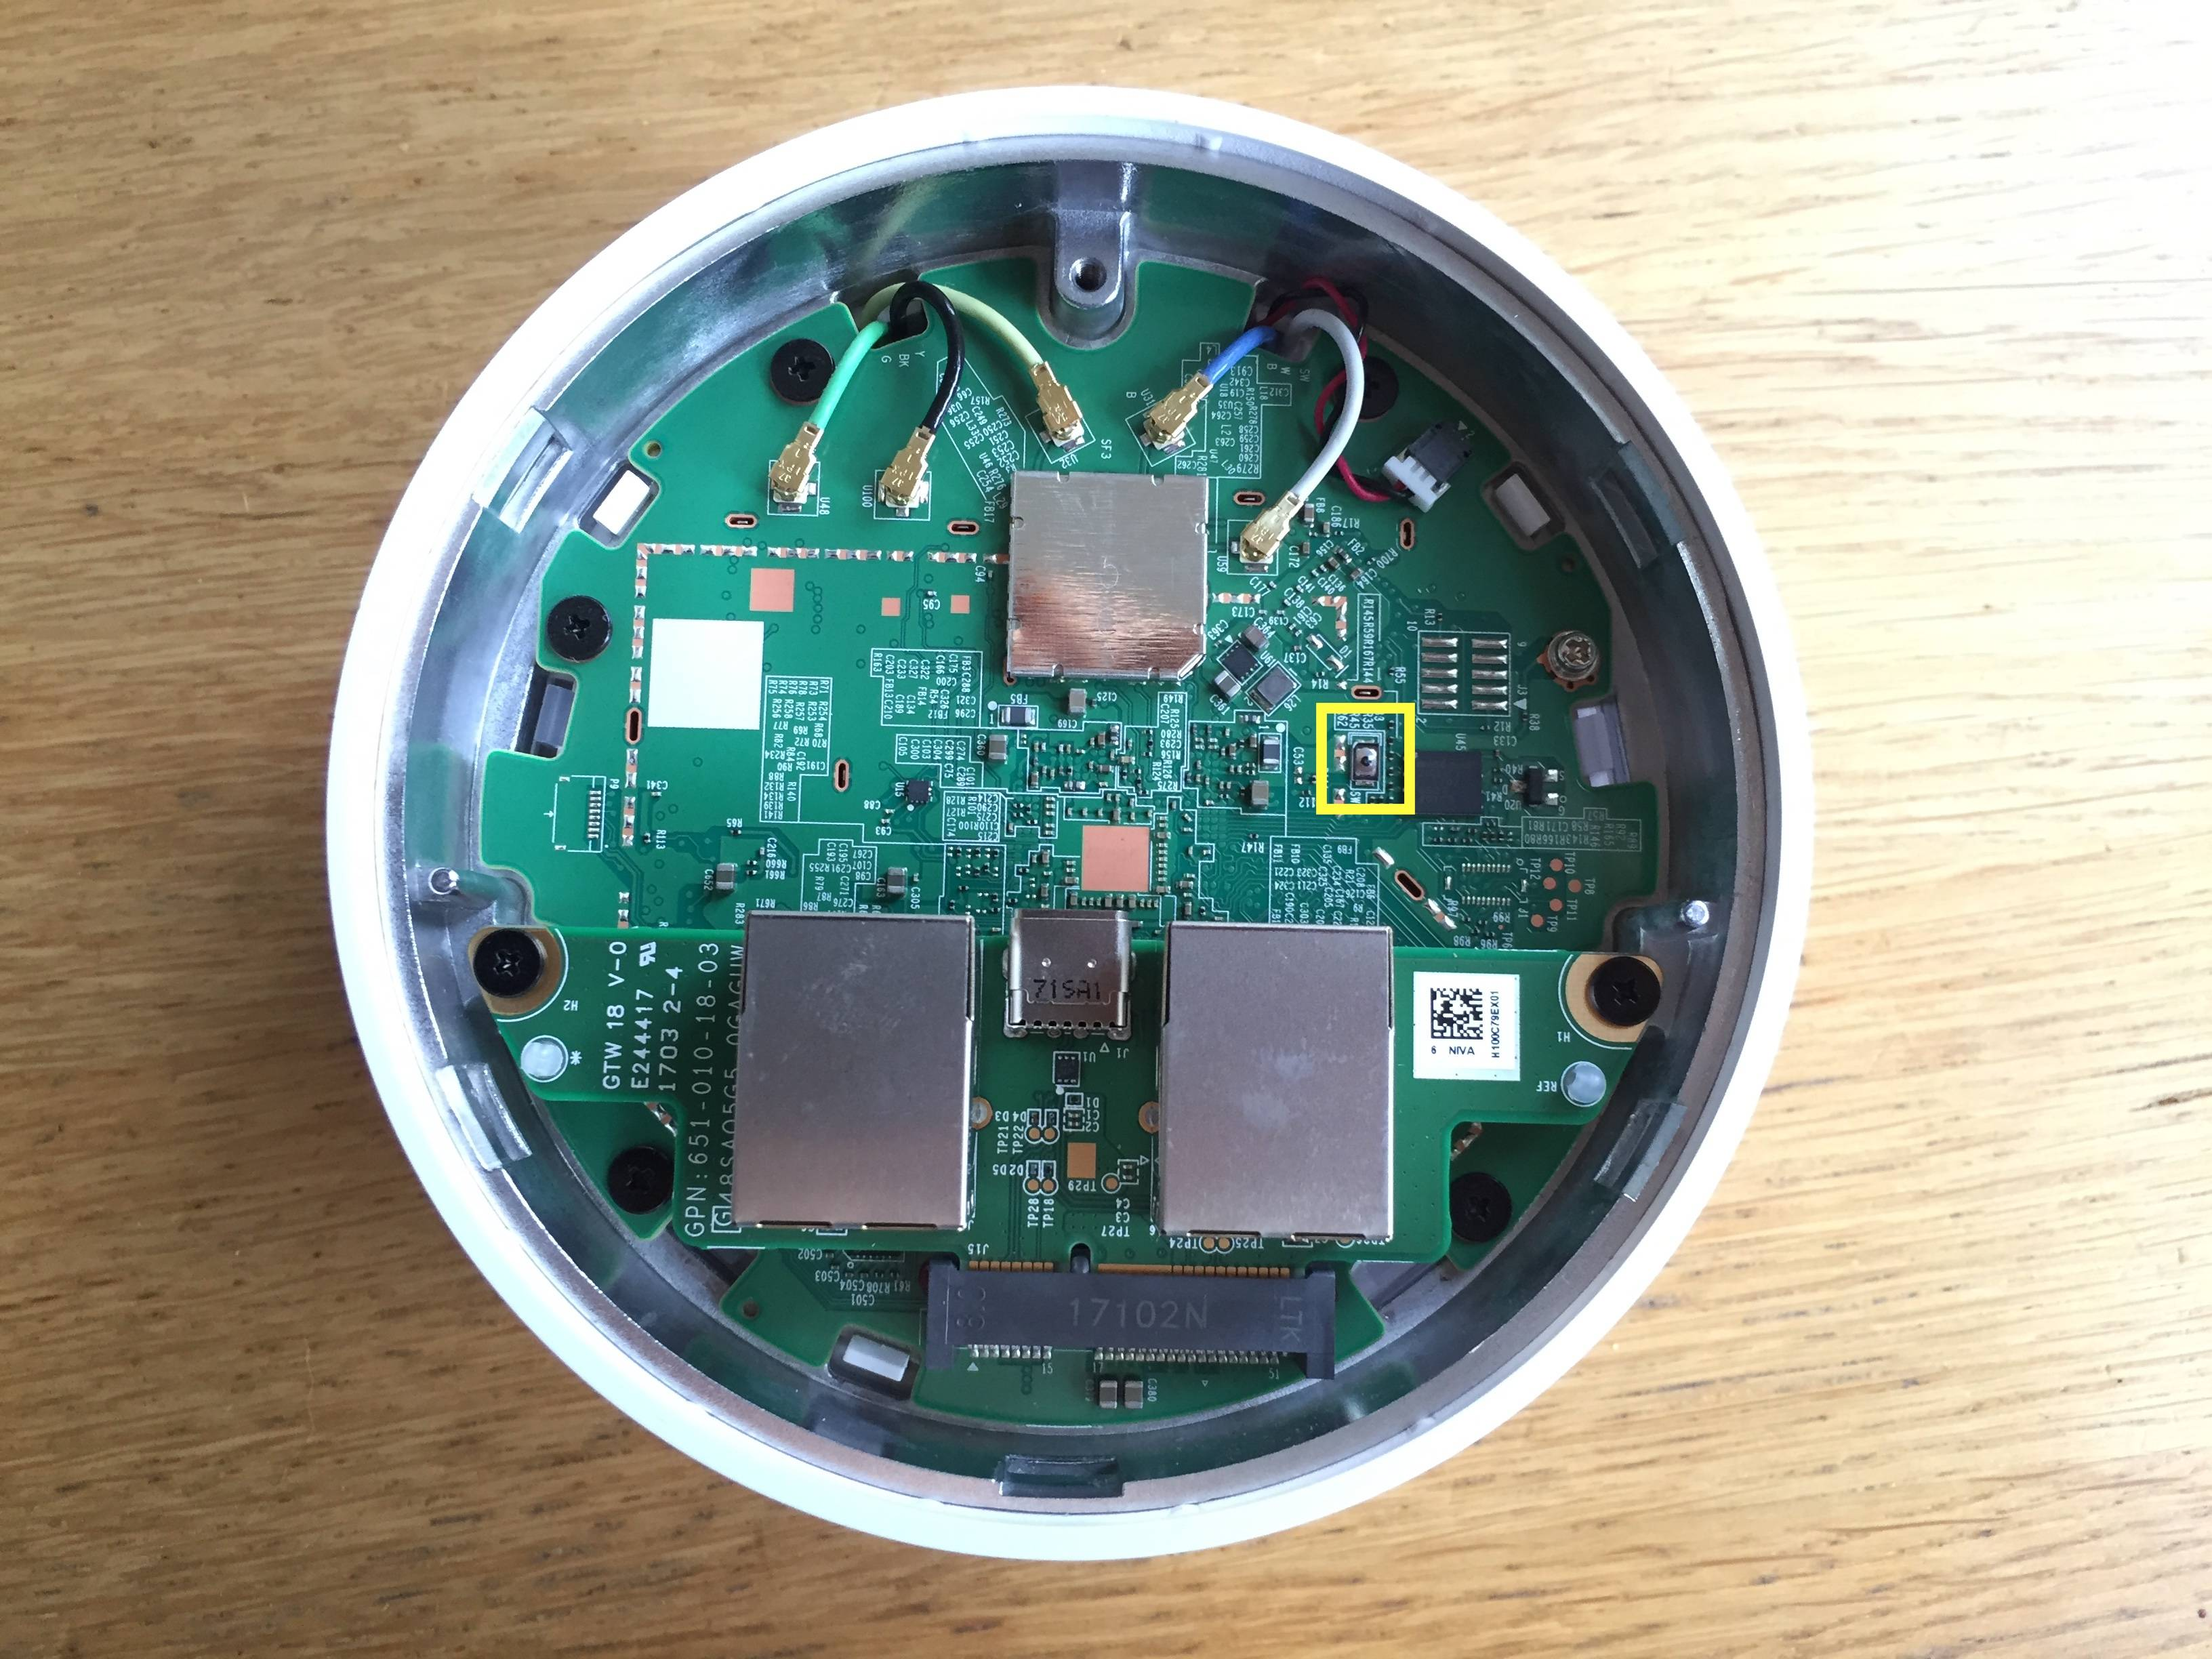 The open source GaleForce project lets you root Google Wifi